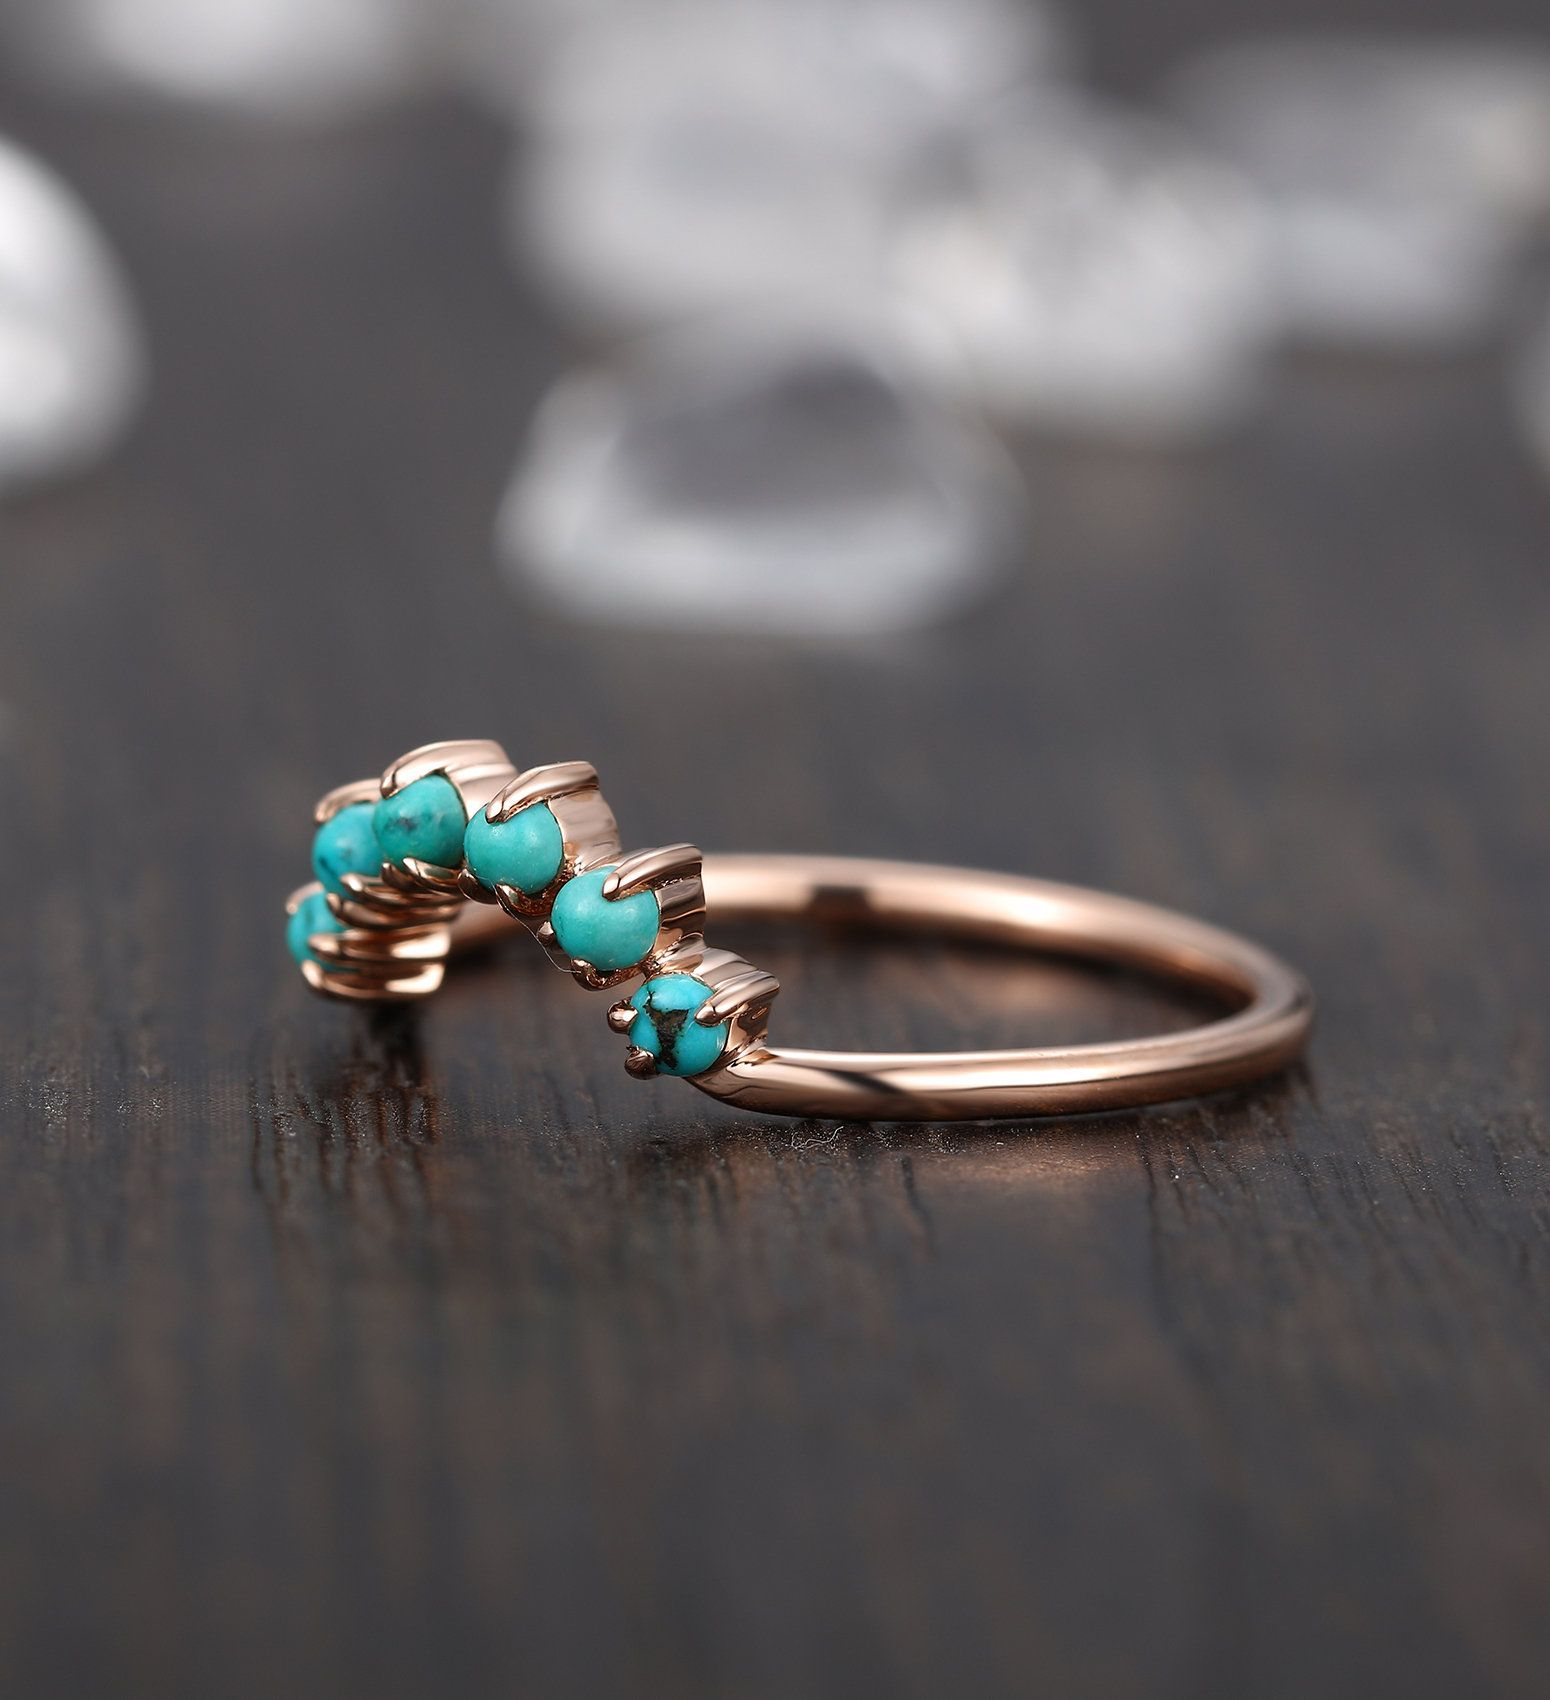 Vintage turquoise wedding band rose gold woman curved round /& marquise cut Art Deco unique  Dainty antique Promise anniversary gift for her